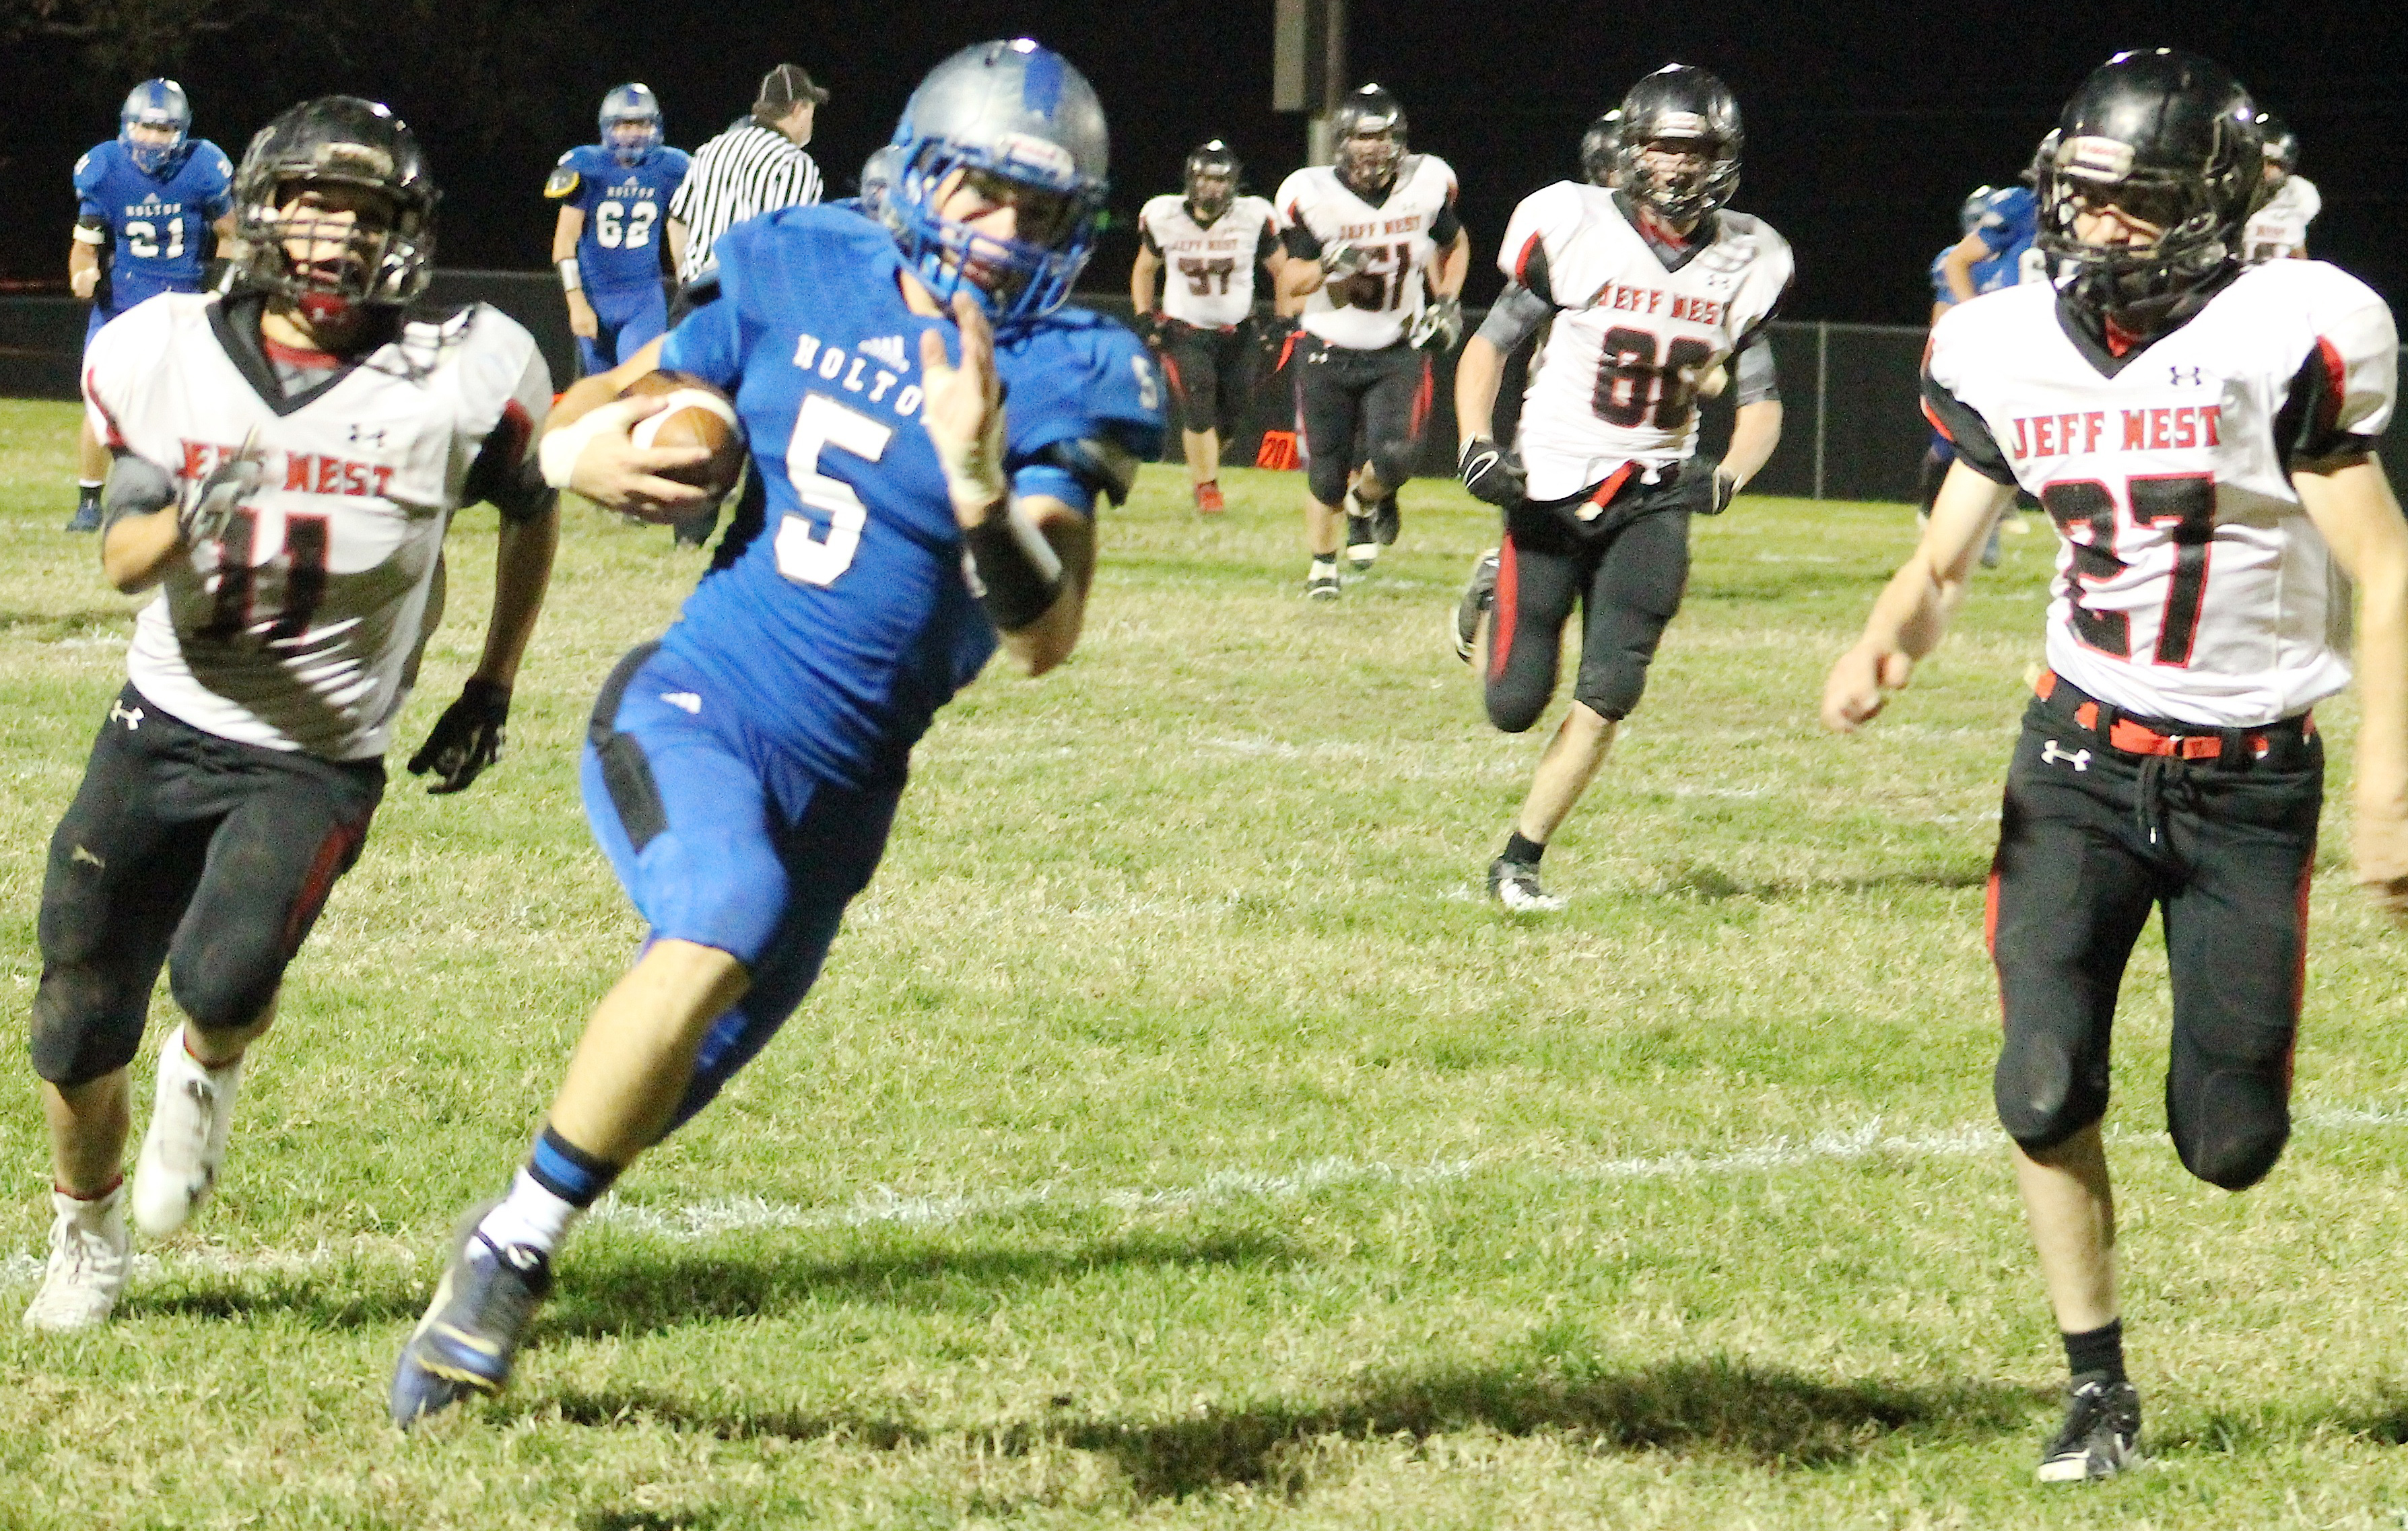 Wildcat Kaden Brandt (middle) turns upfield after hauling in a catch that set up one of Holton's three first half touchdowns.